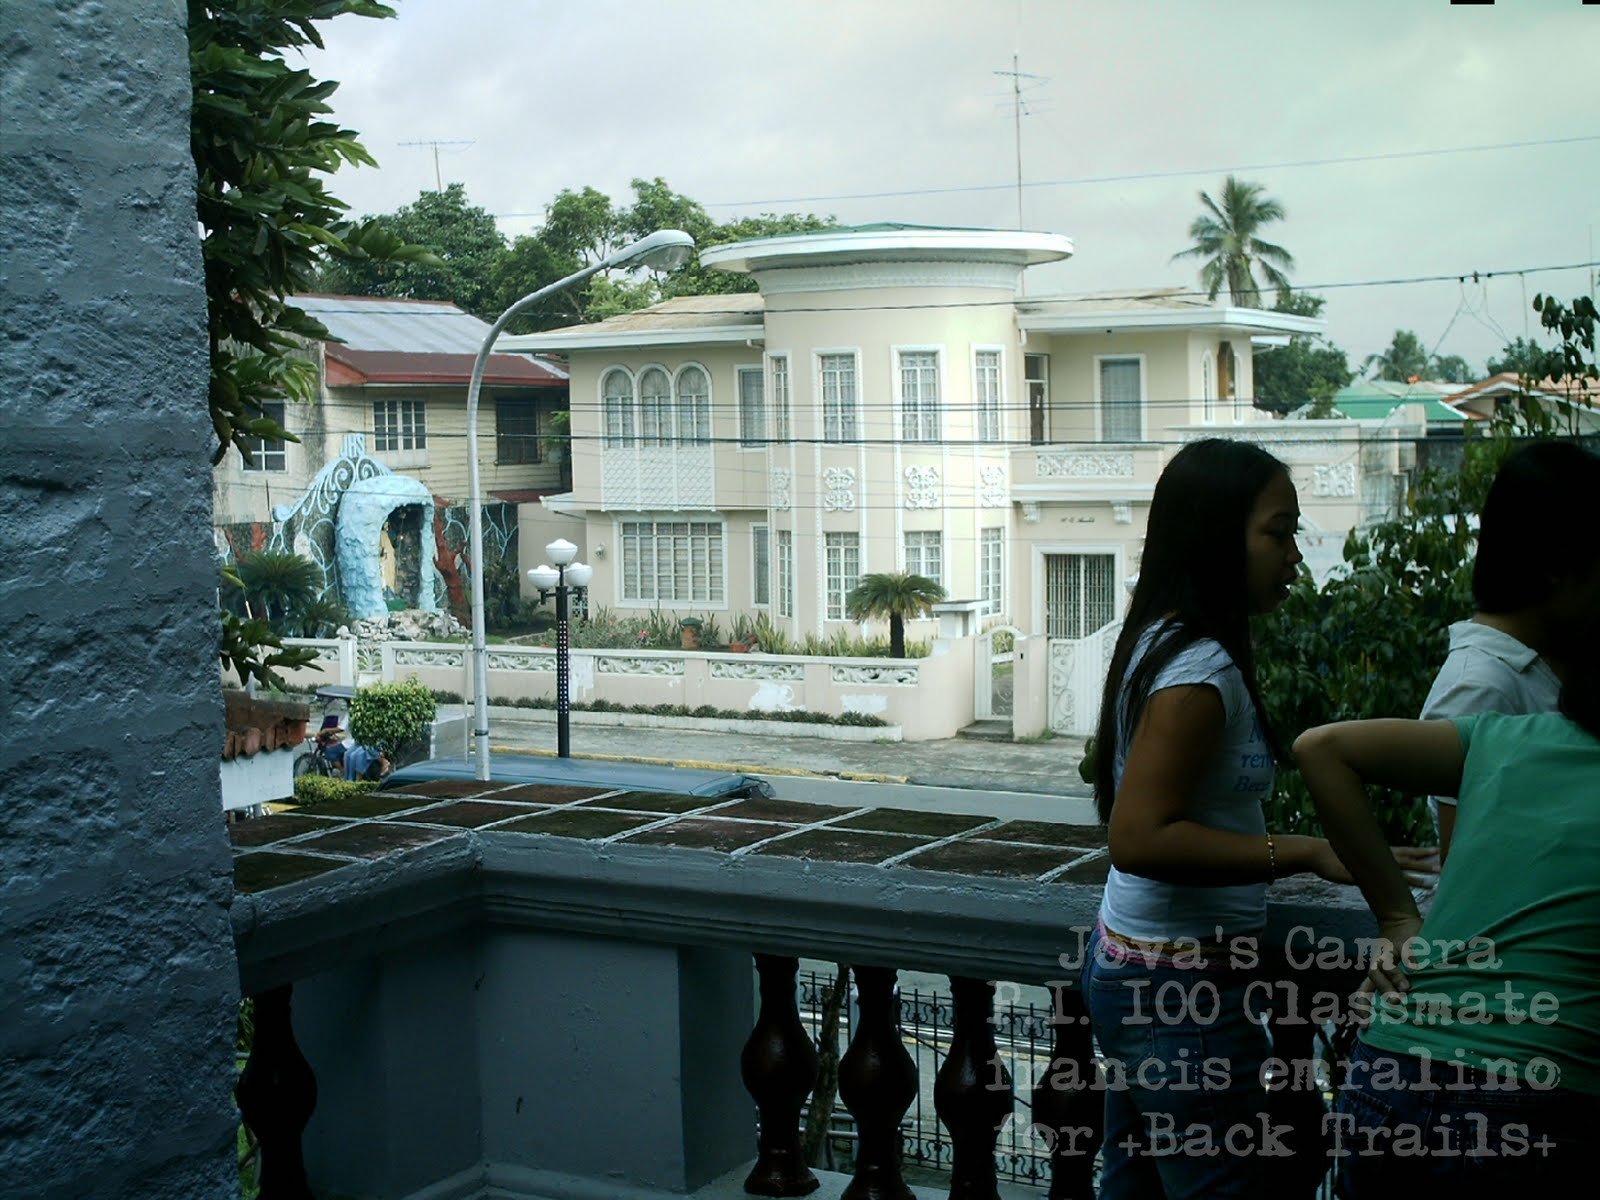 nick joaquin house in zapote street Summary: it is about a man who married a woman who was living with her father on a house on zapote street the couple spent their first months in that house.